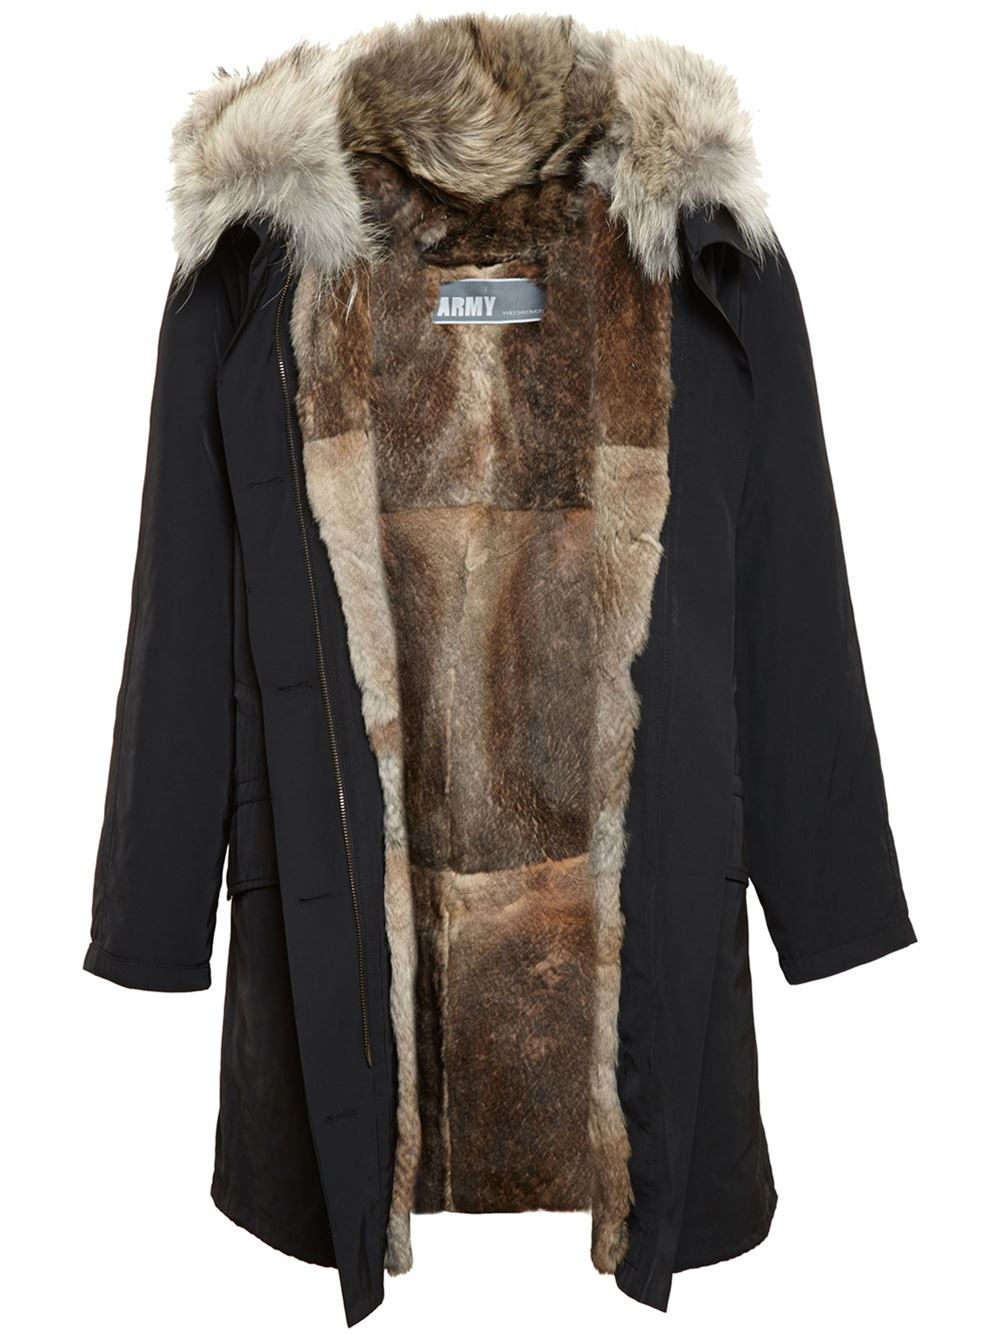 lyst army by yves salomon rabbit fur lined parka in black. Black Bedroom Furniture Sets. Home Design Ideas